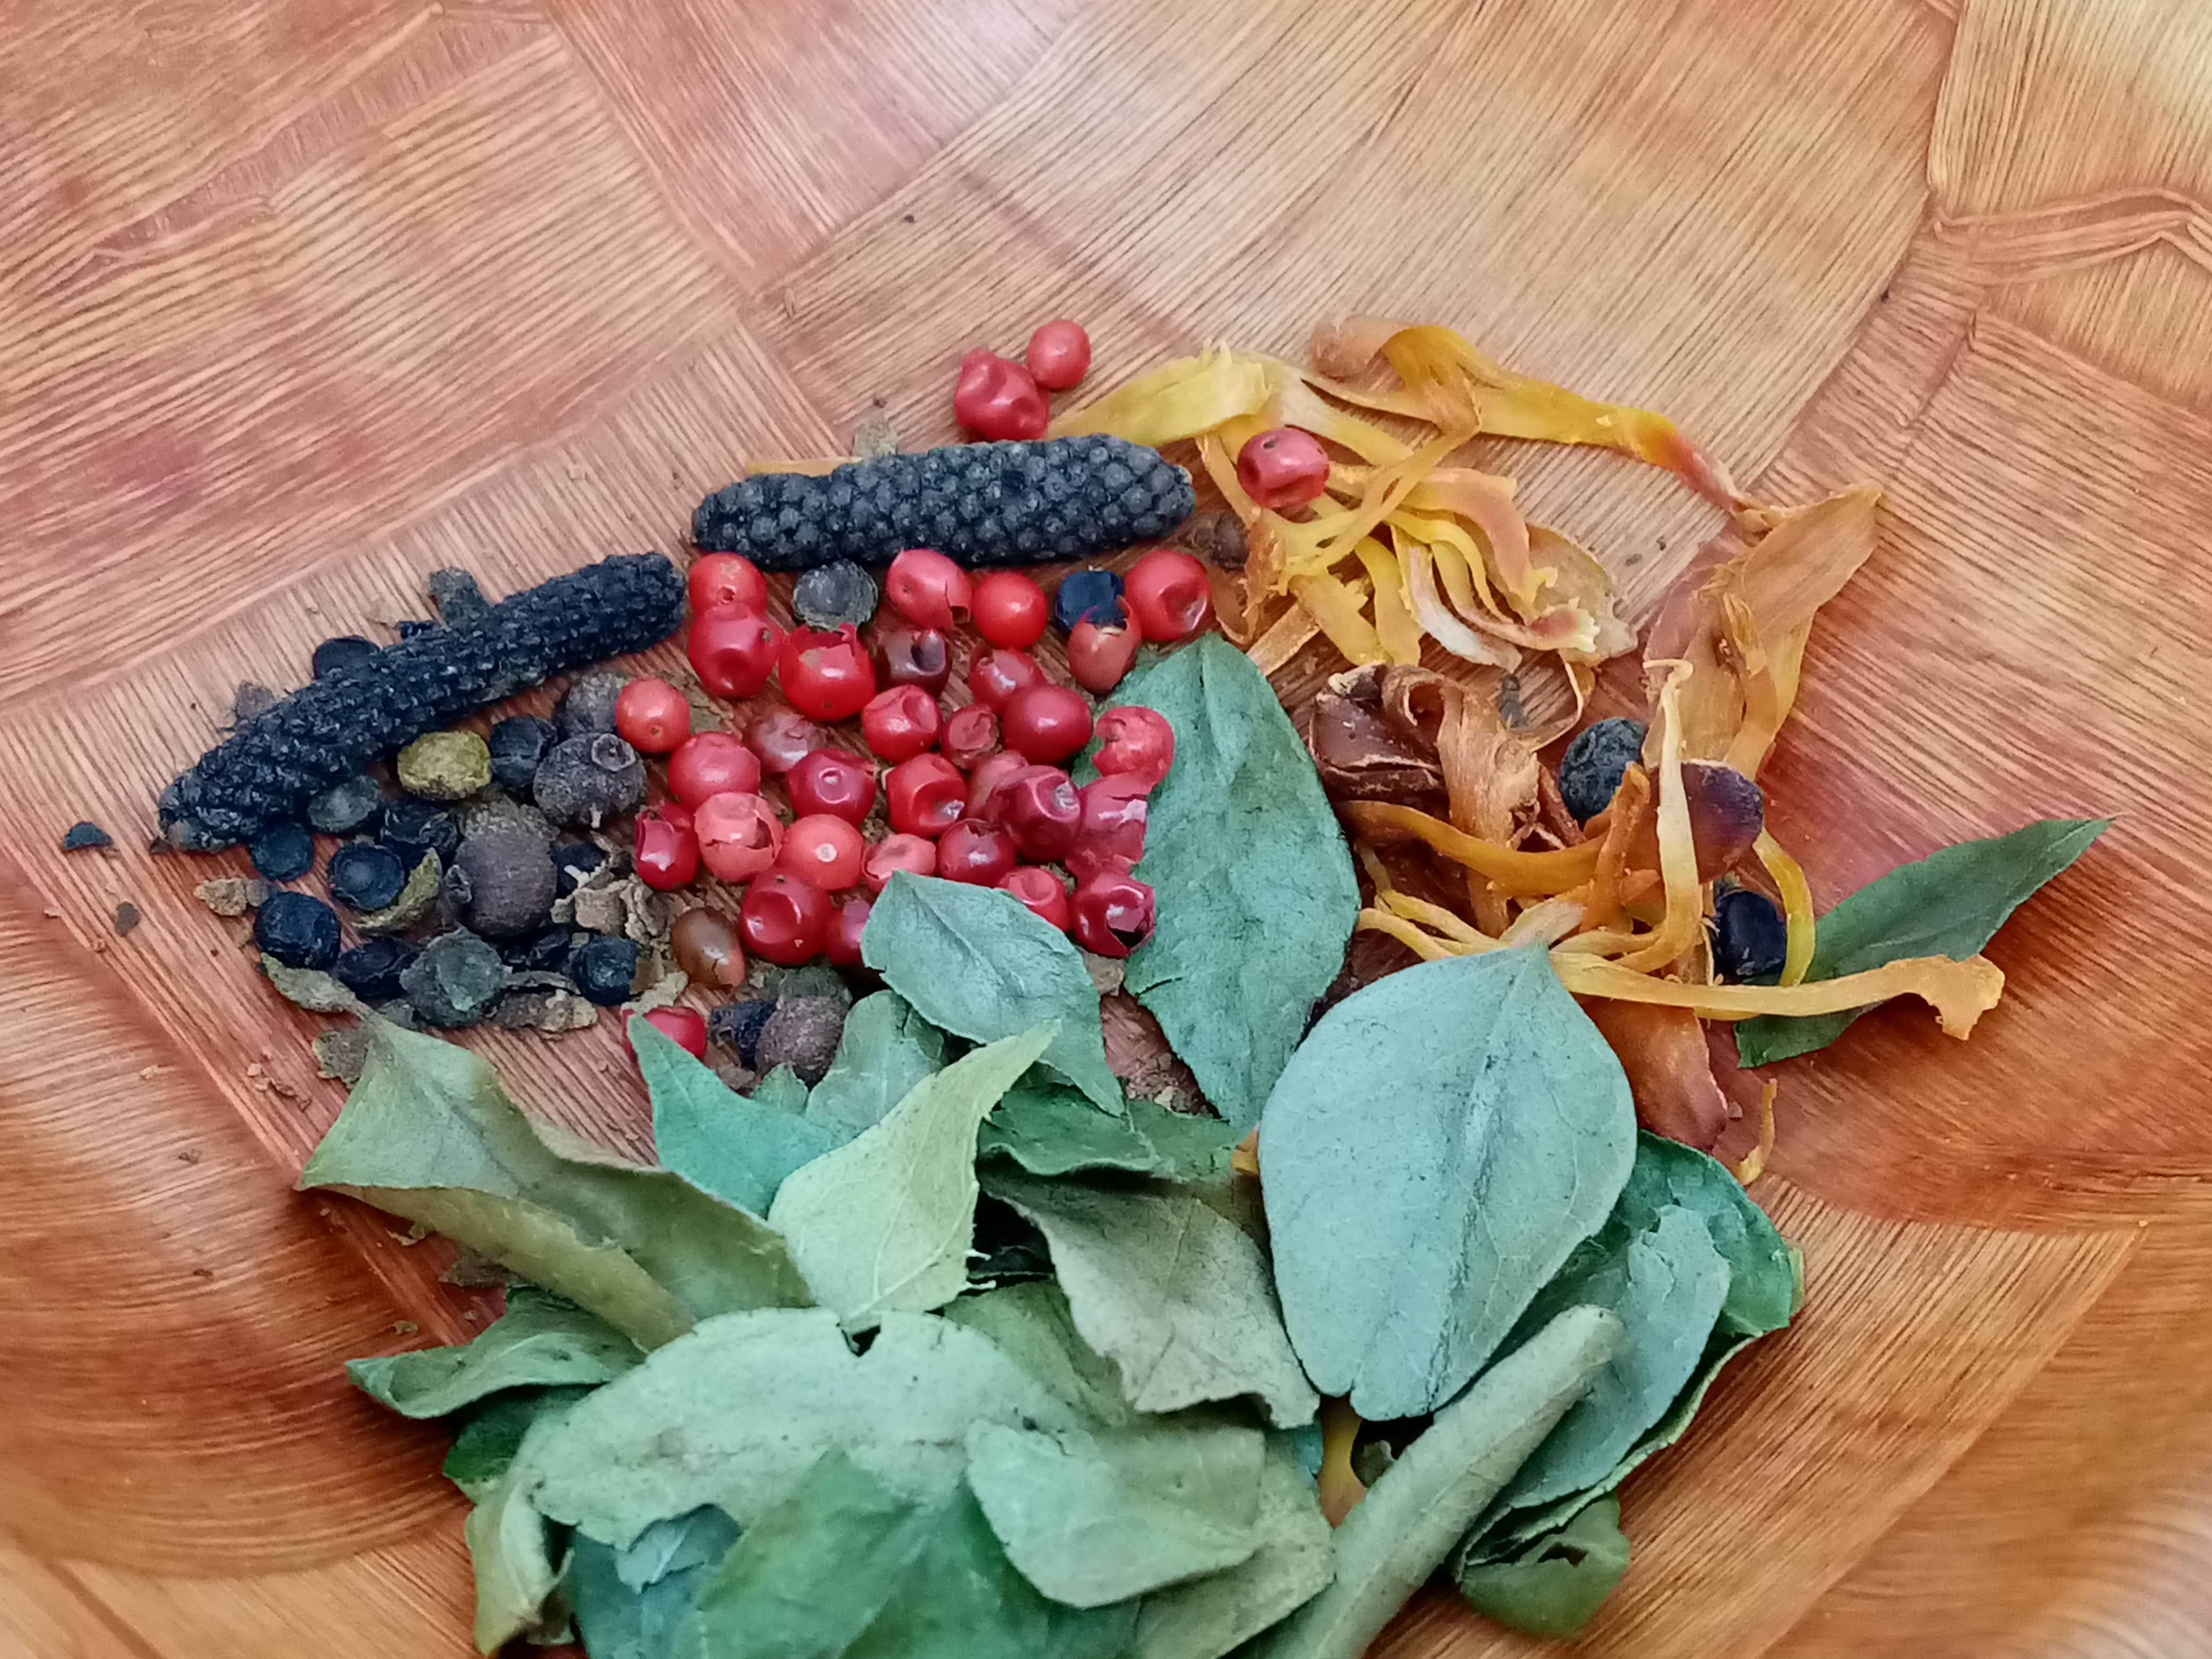 species in a bowl: bay leaves, red pepper corns, nutmeg flowers, long black pepper